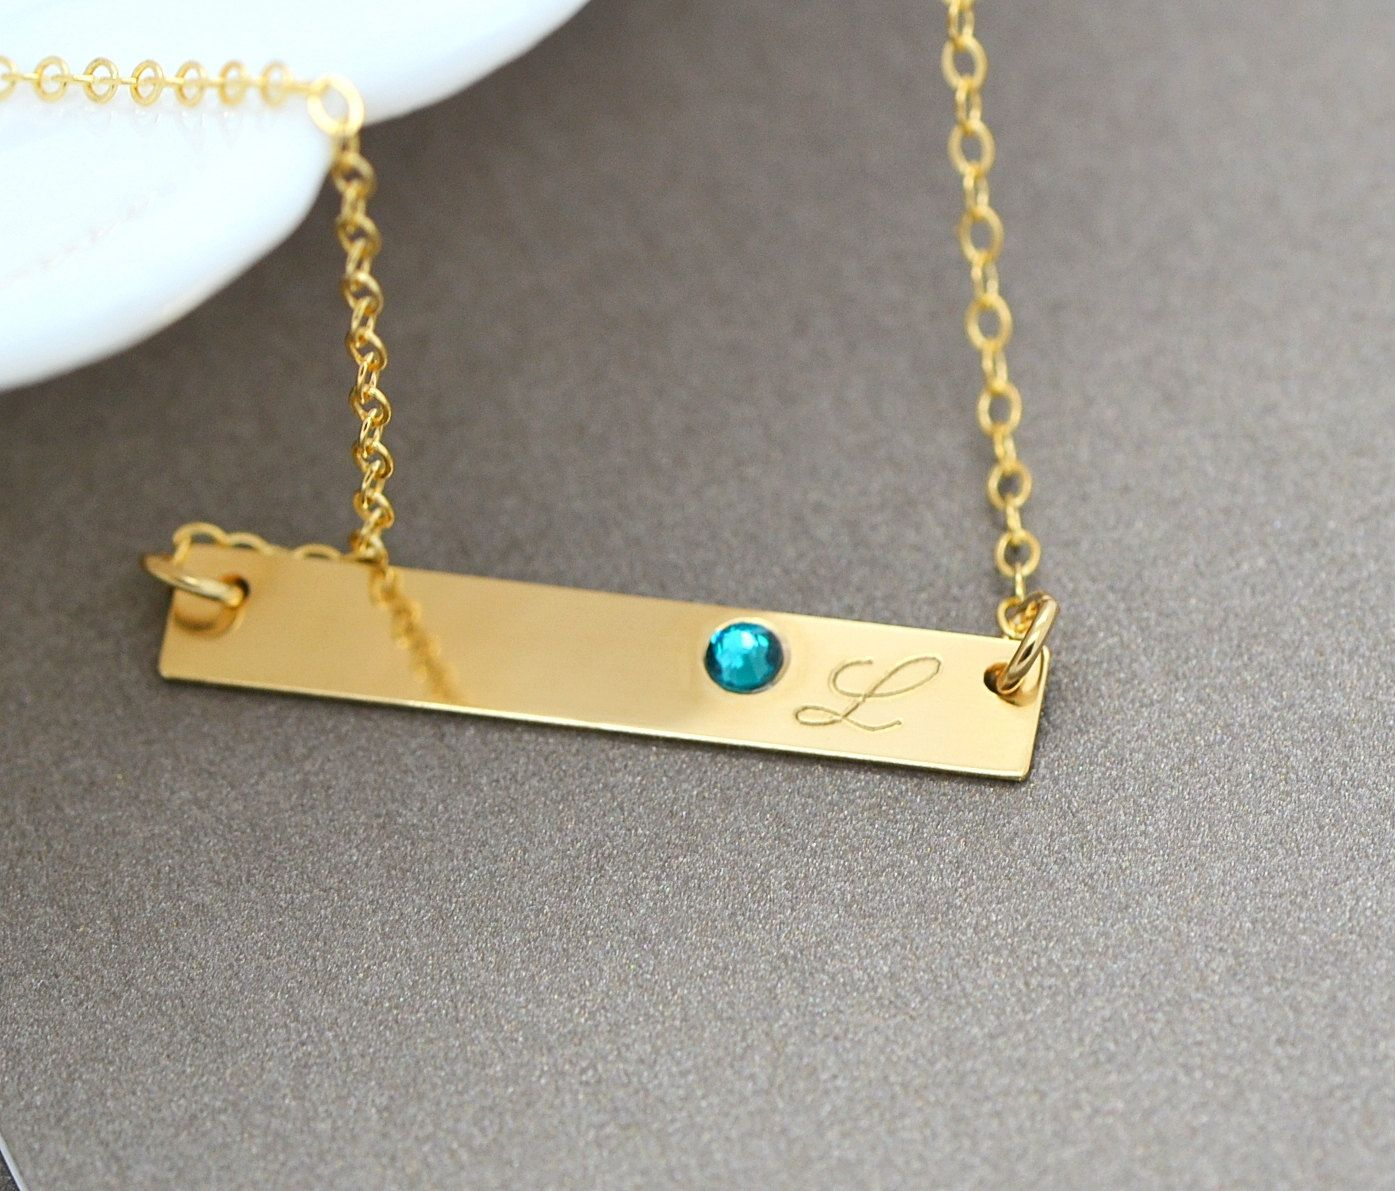 1dc95b54e8977 Bar Necklace With Birthstone, Birthstone Bar Necklace, Personalized ...